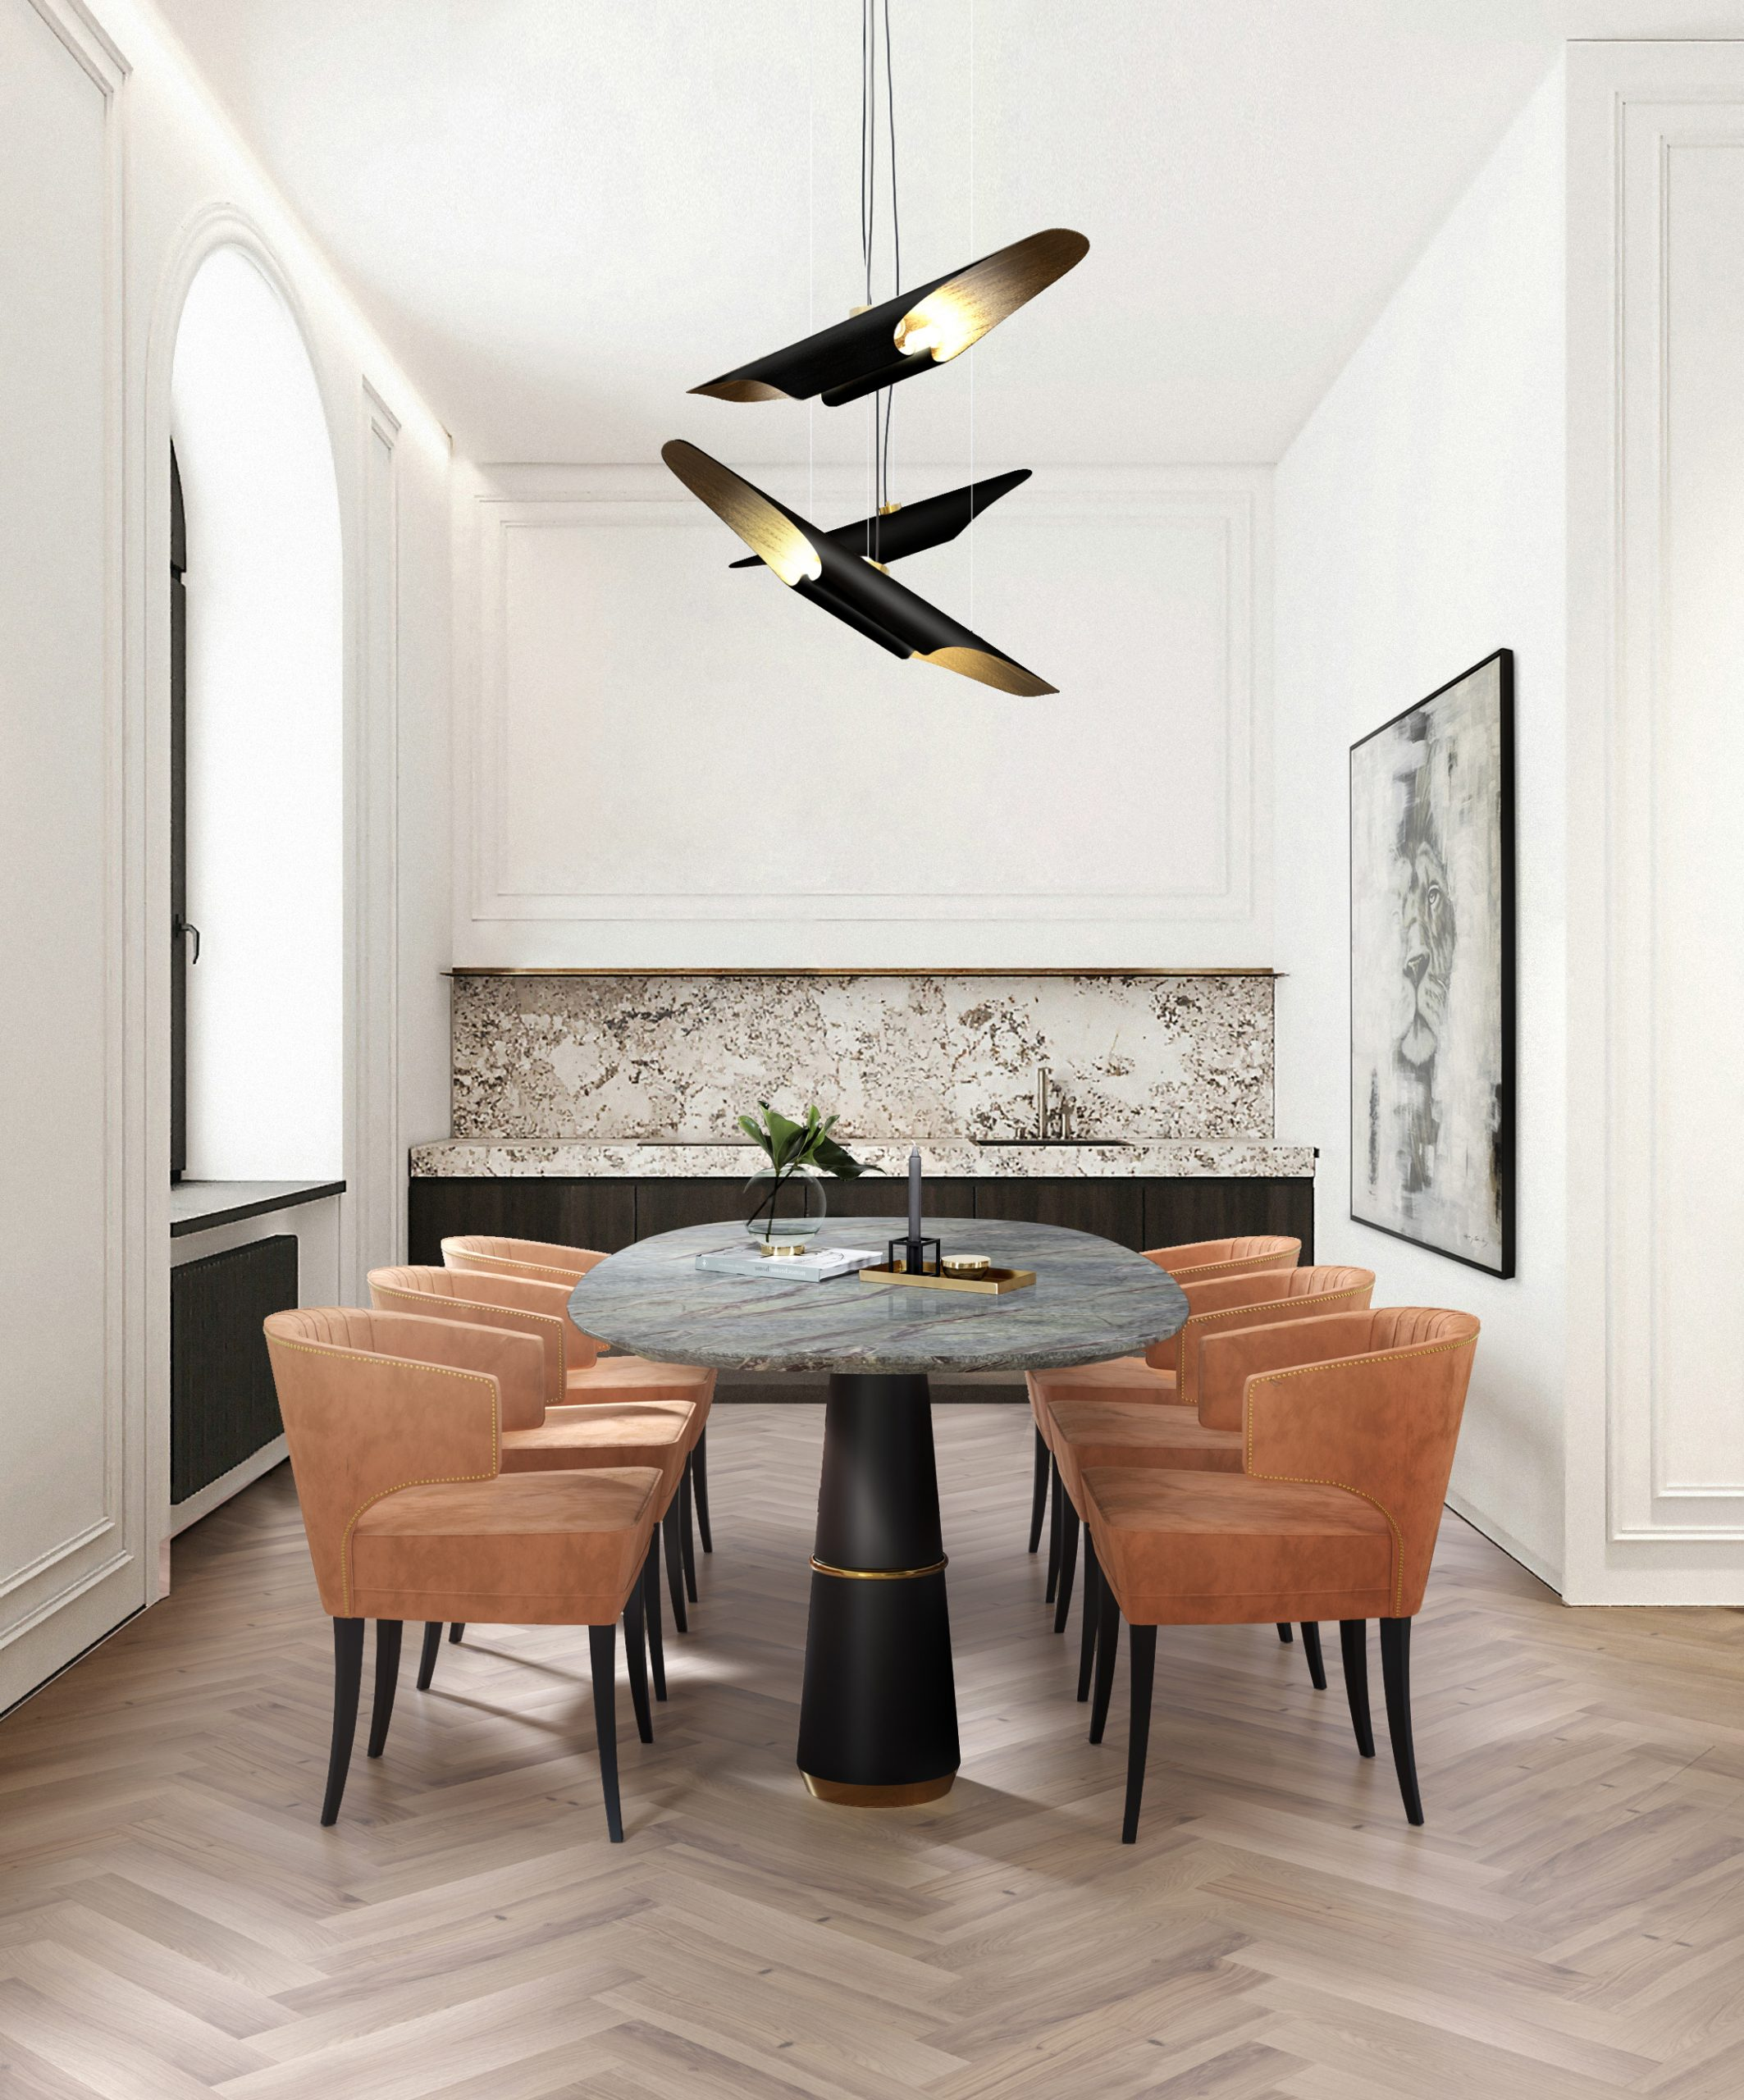 Discover the Italian Design Trends You'll See Everywhere in 2021! italian design trends Discover the Italian Design Trends You'll See Everywhere in 2021! 12 scaled